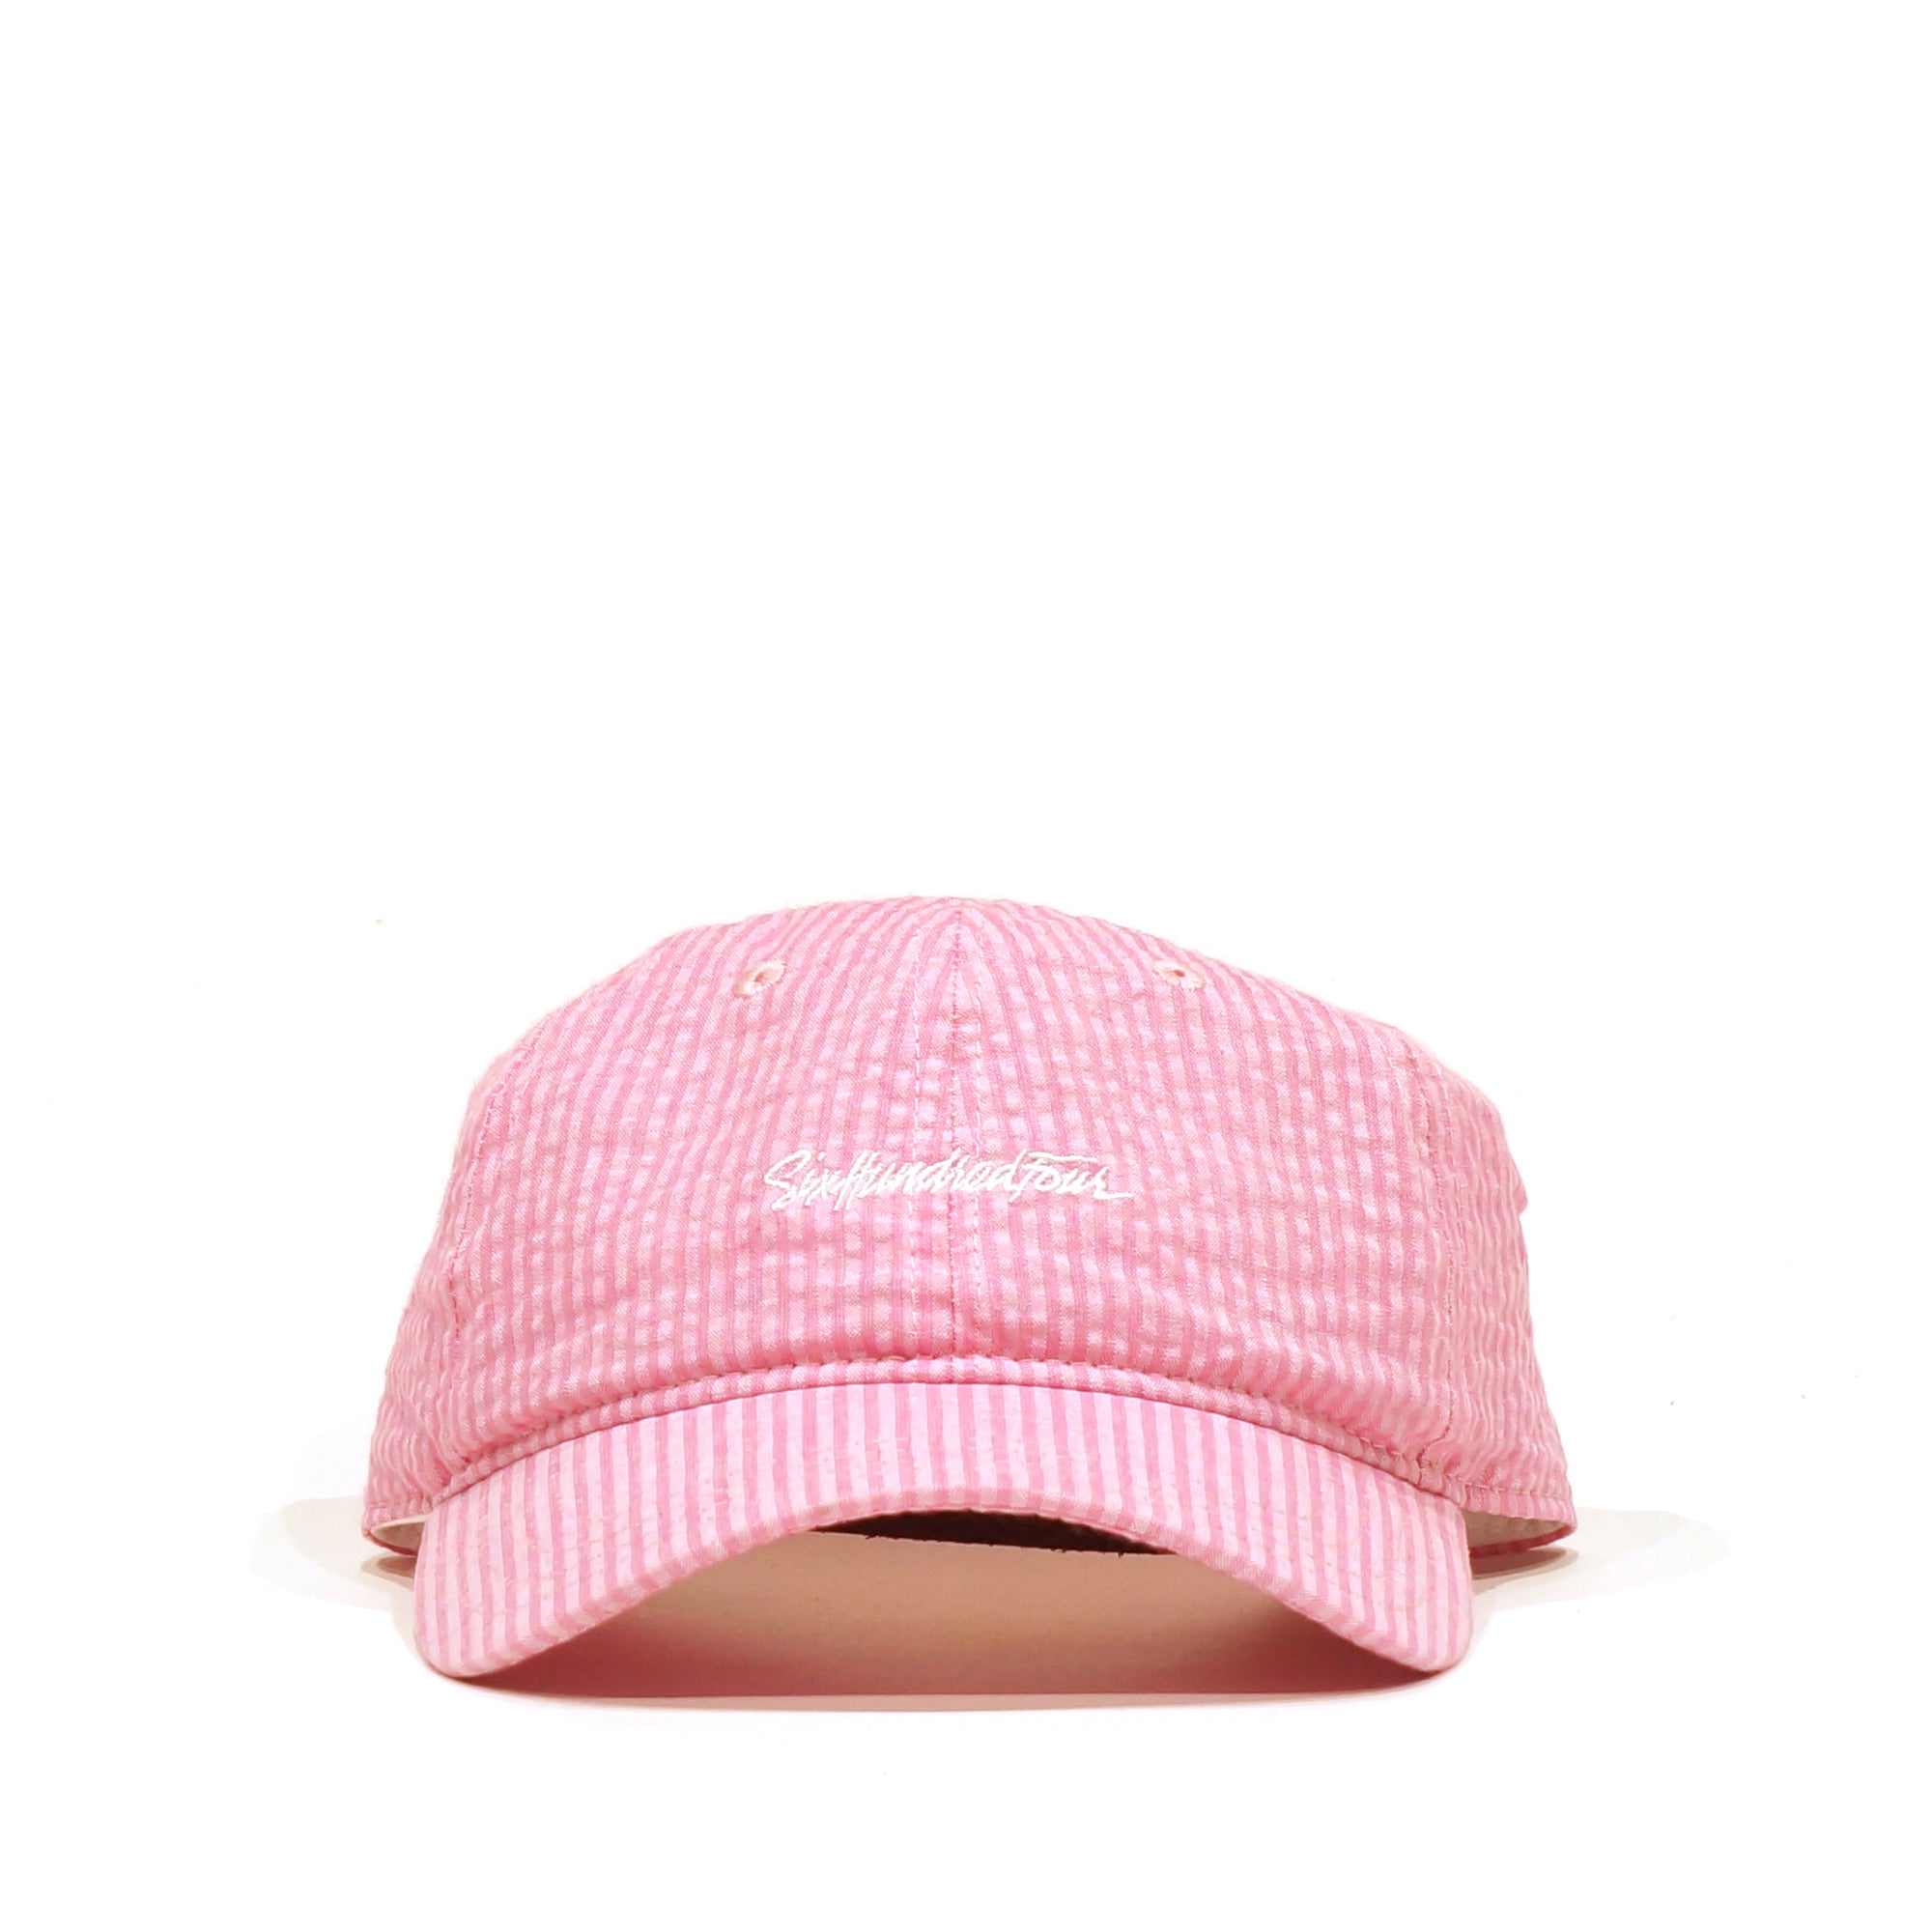 Curved Low Rise Hat - Seersucker Pink